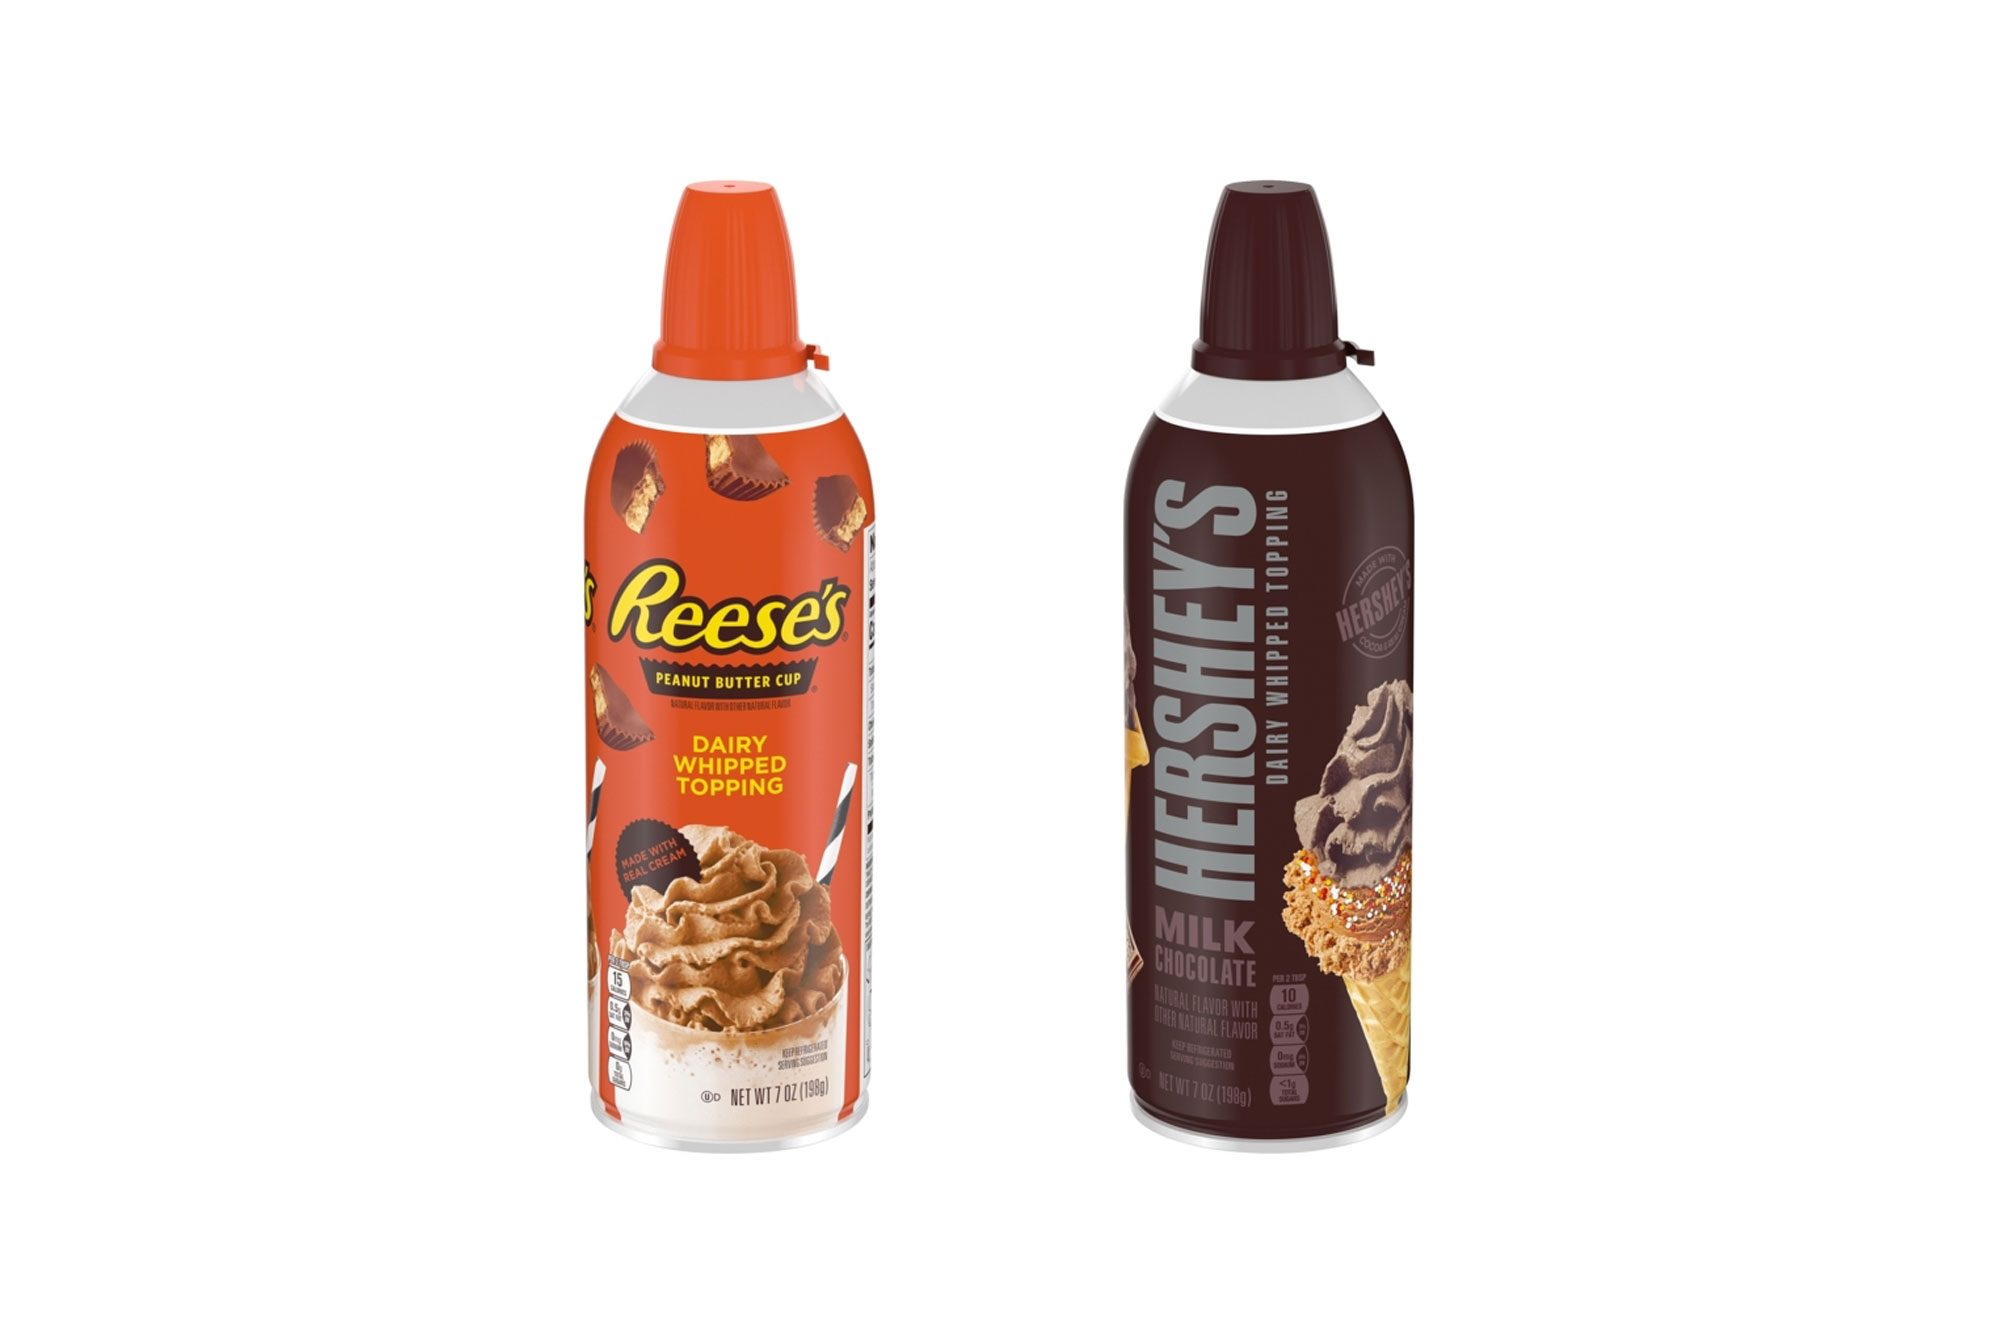 Hershey's Launches Milk Chocolate and Reese's Peanut Butter Cup Whipped Cream Cans